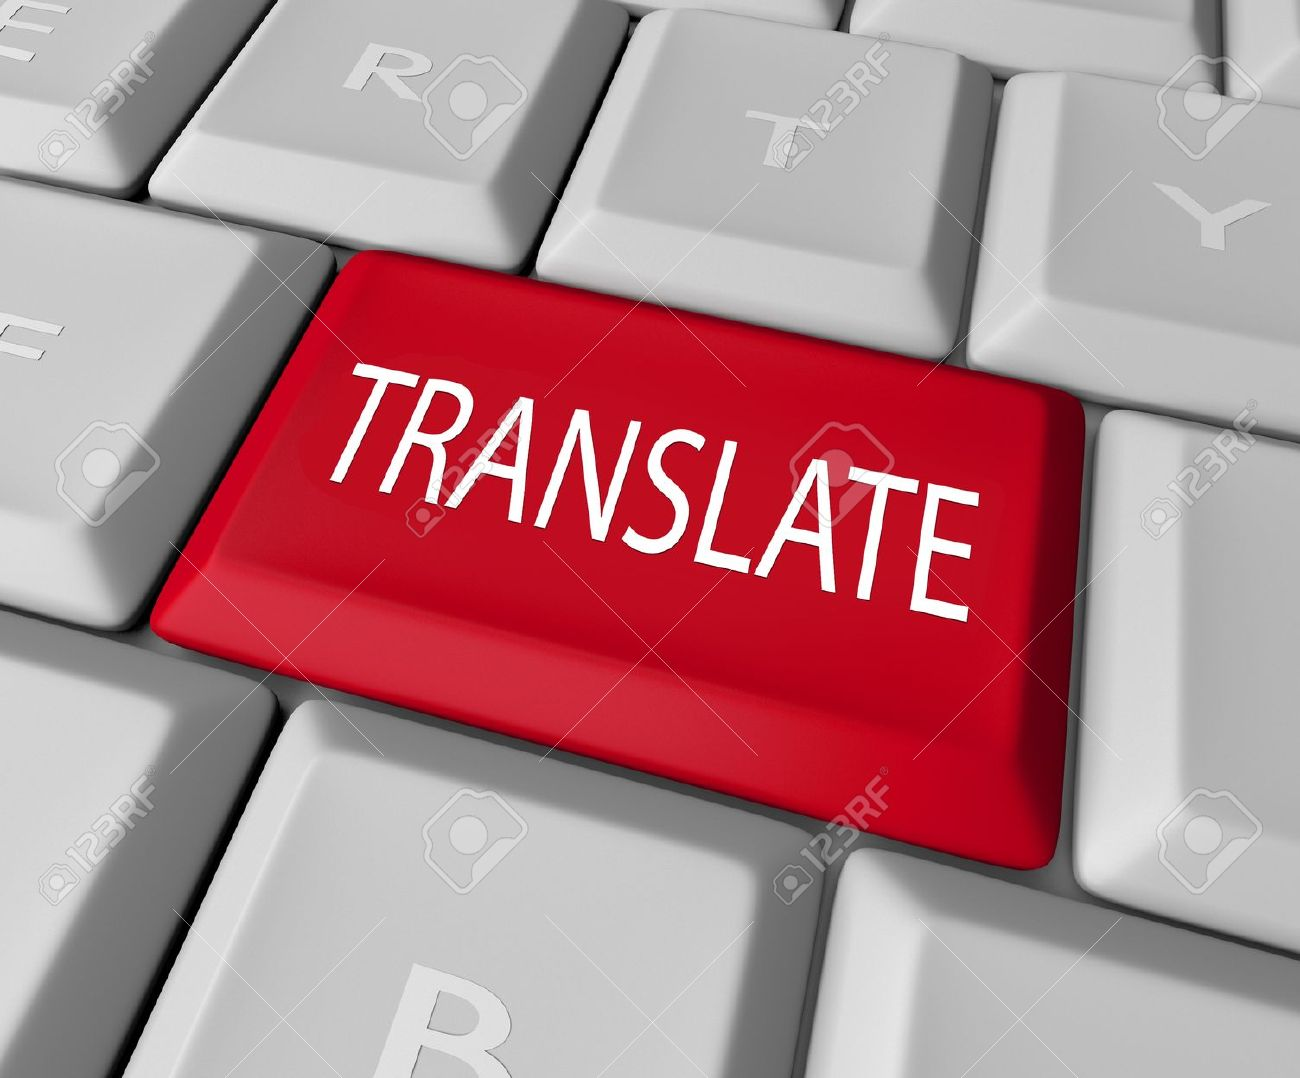 The Word Translate On A Red Computer Keyboard Key Or Button To.